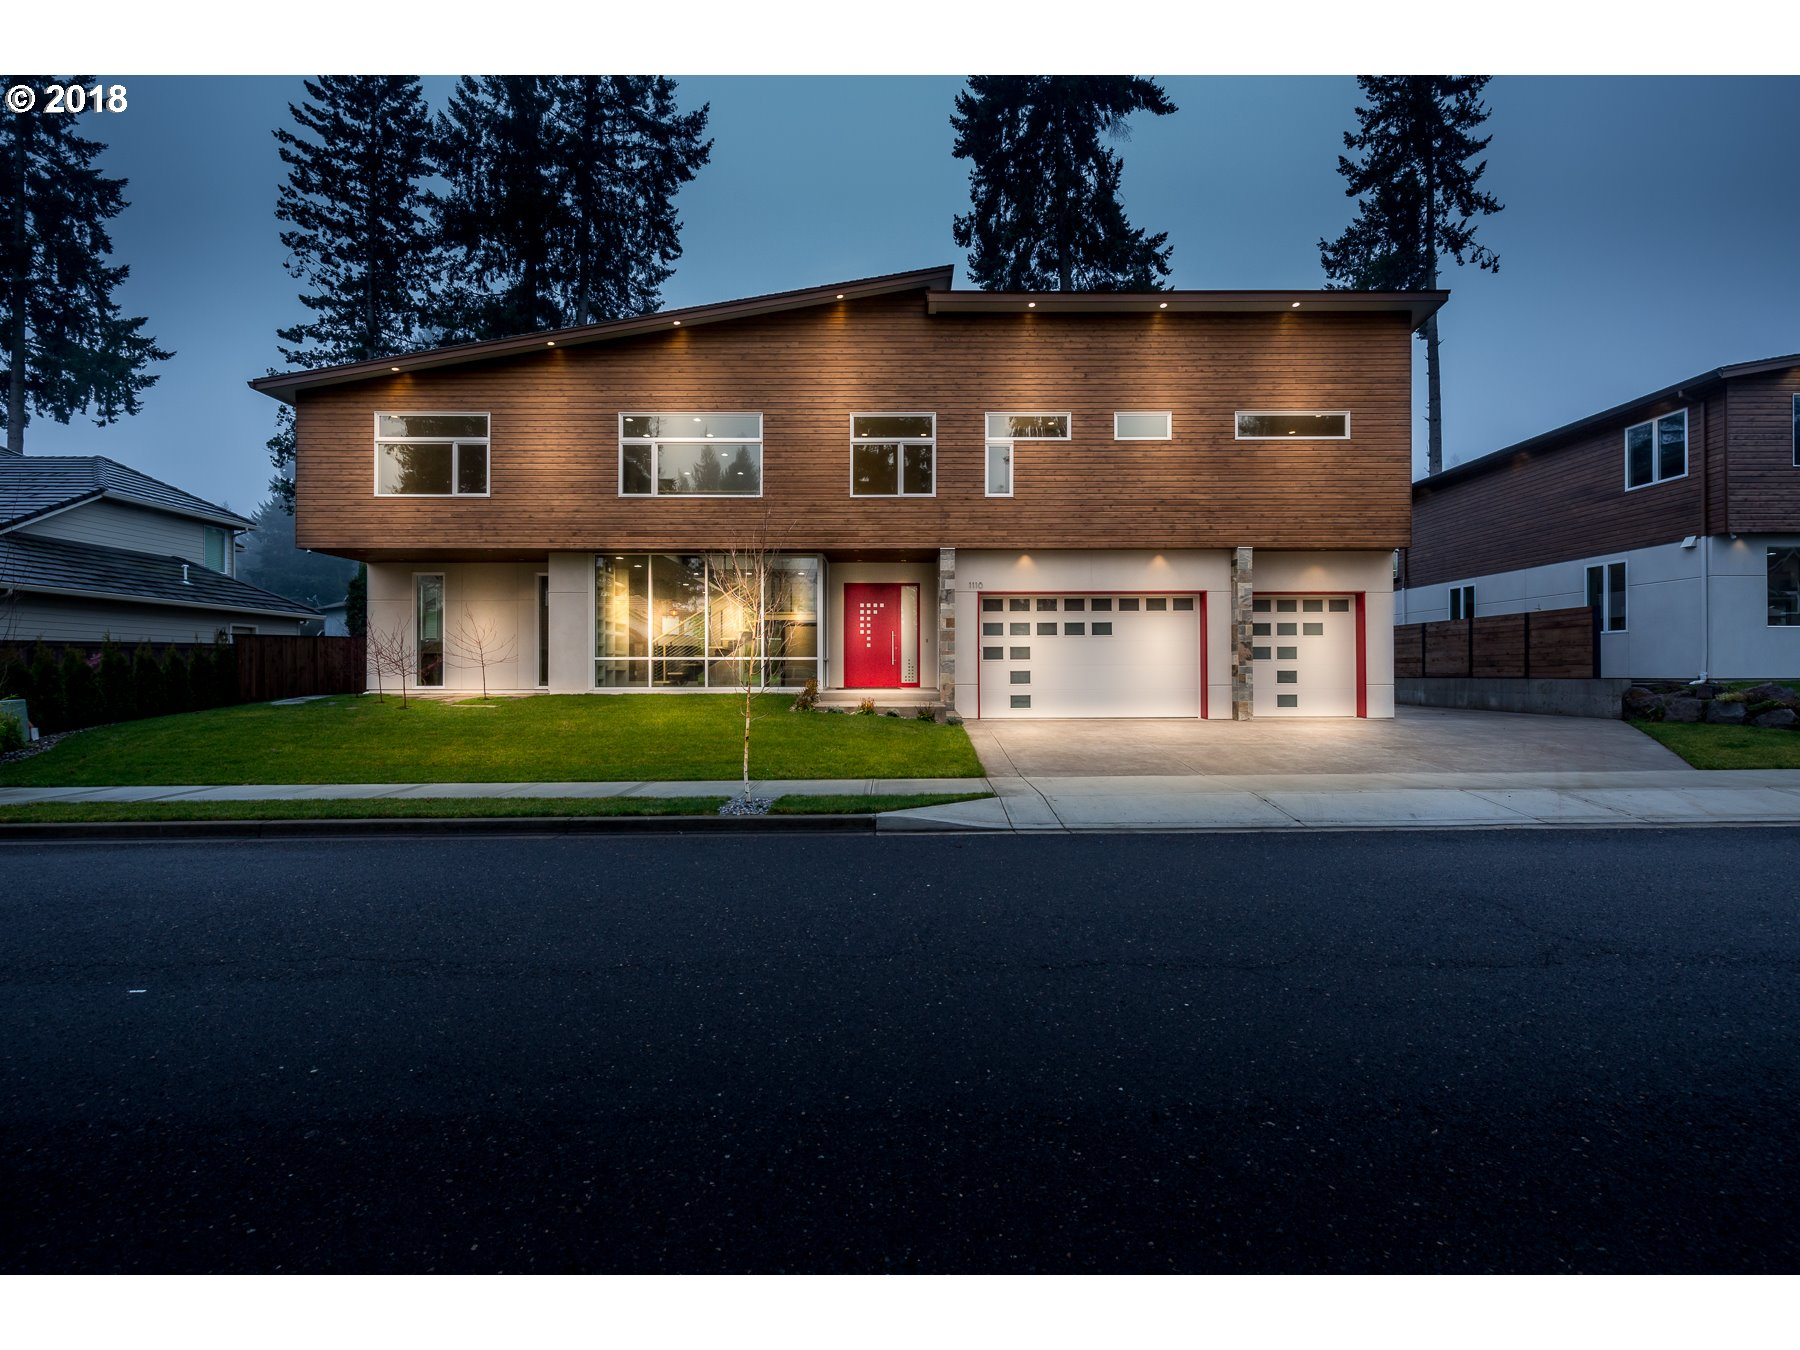 Amazing modern houses vancouver wa contemporary simple for Home design vancouver wa